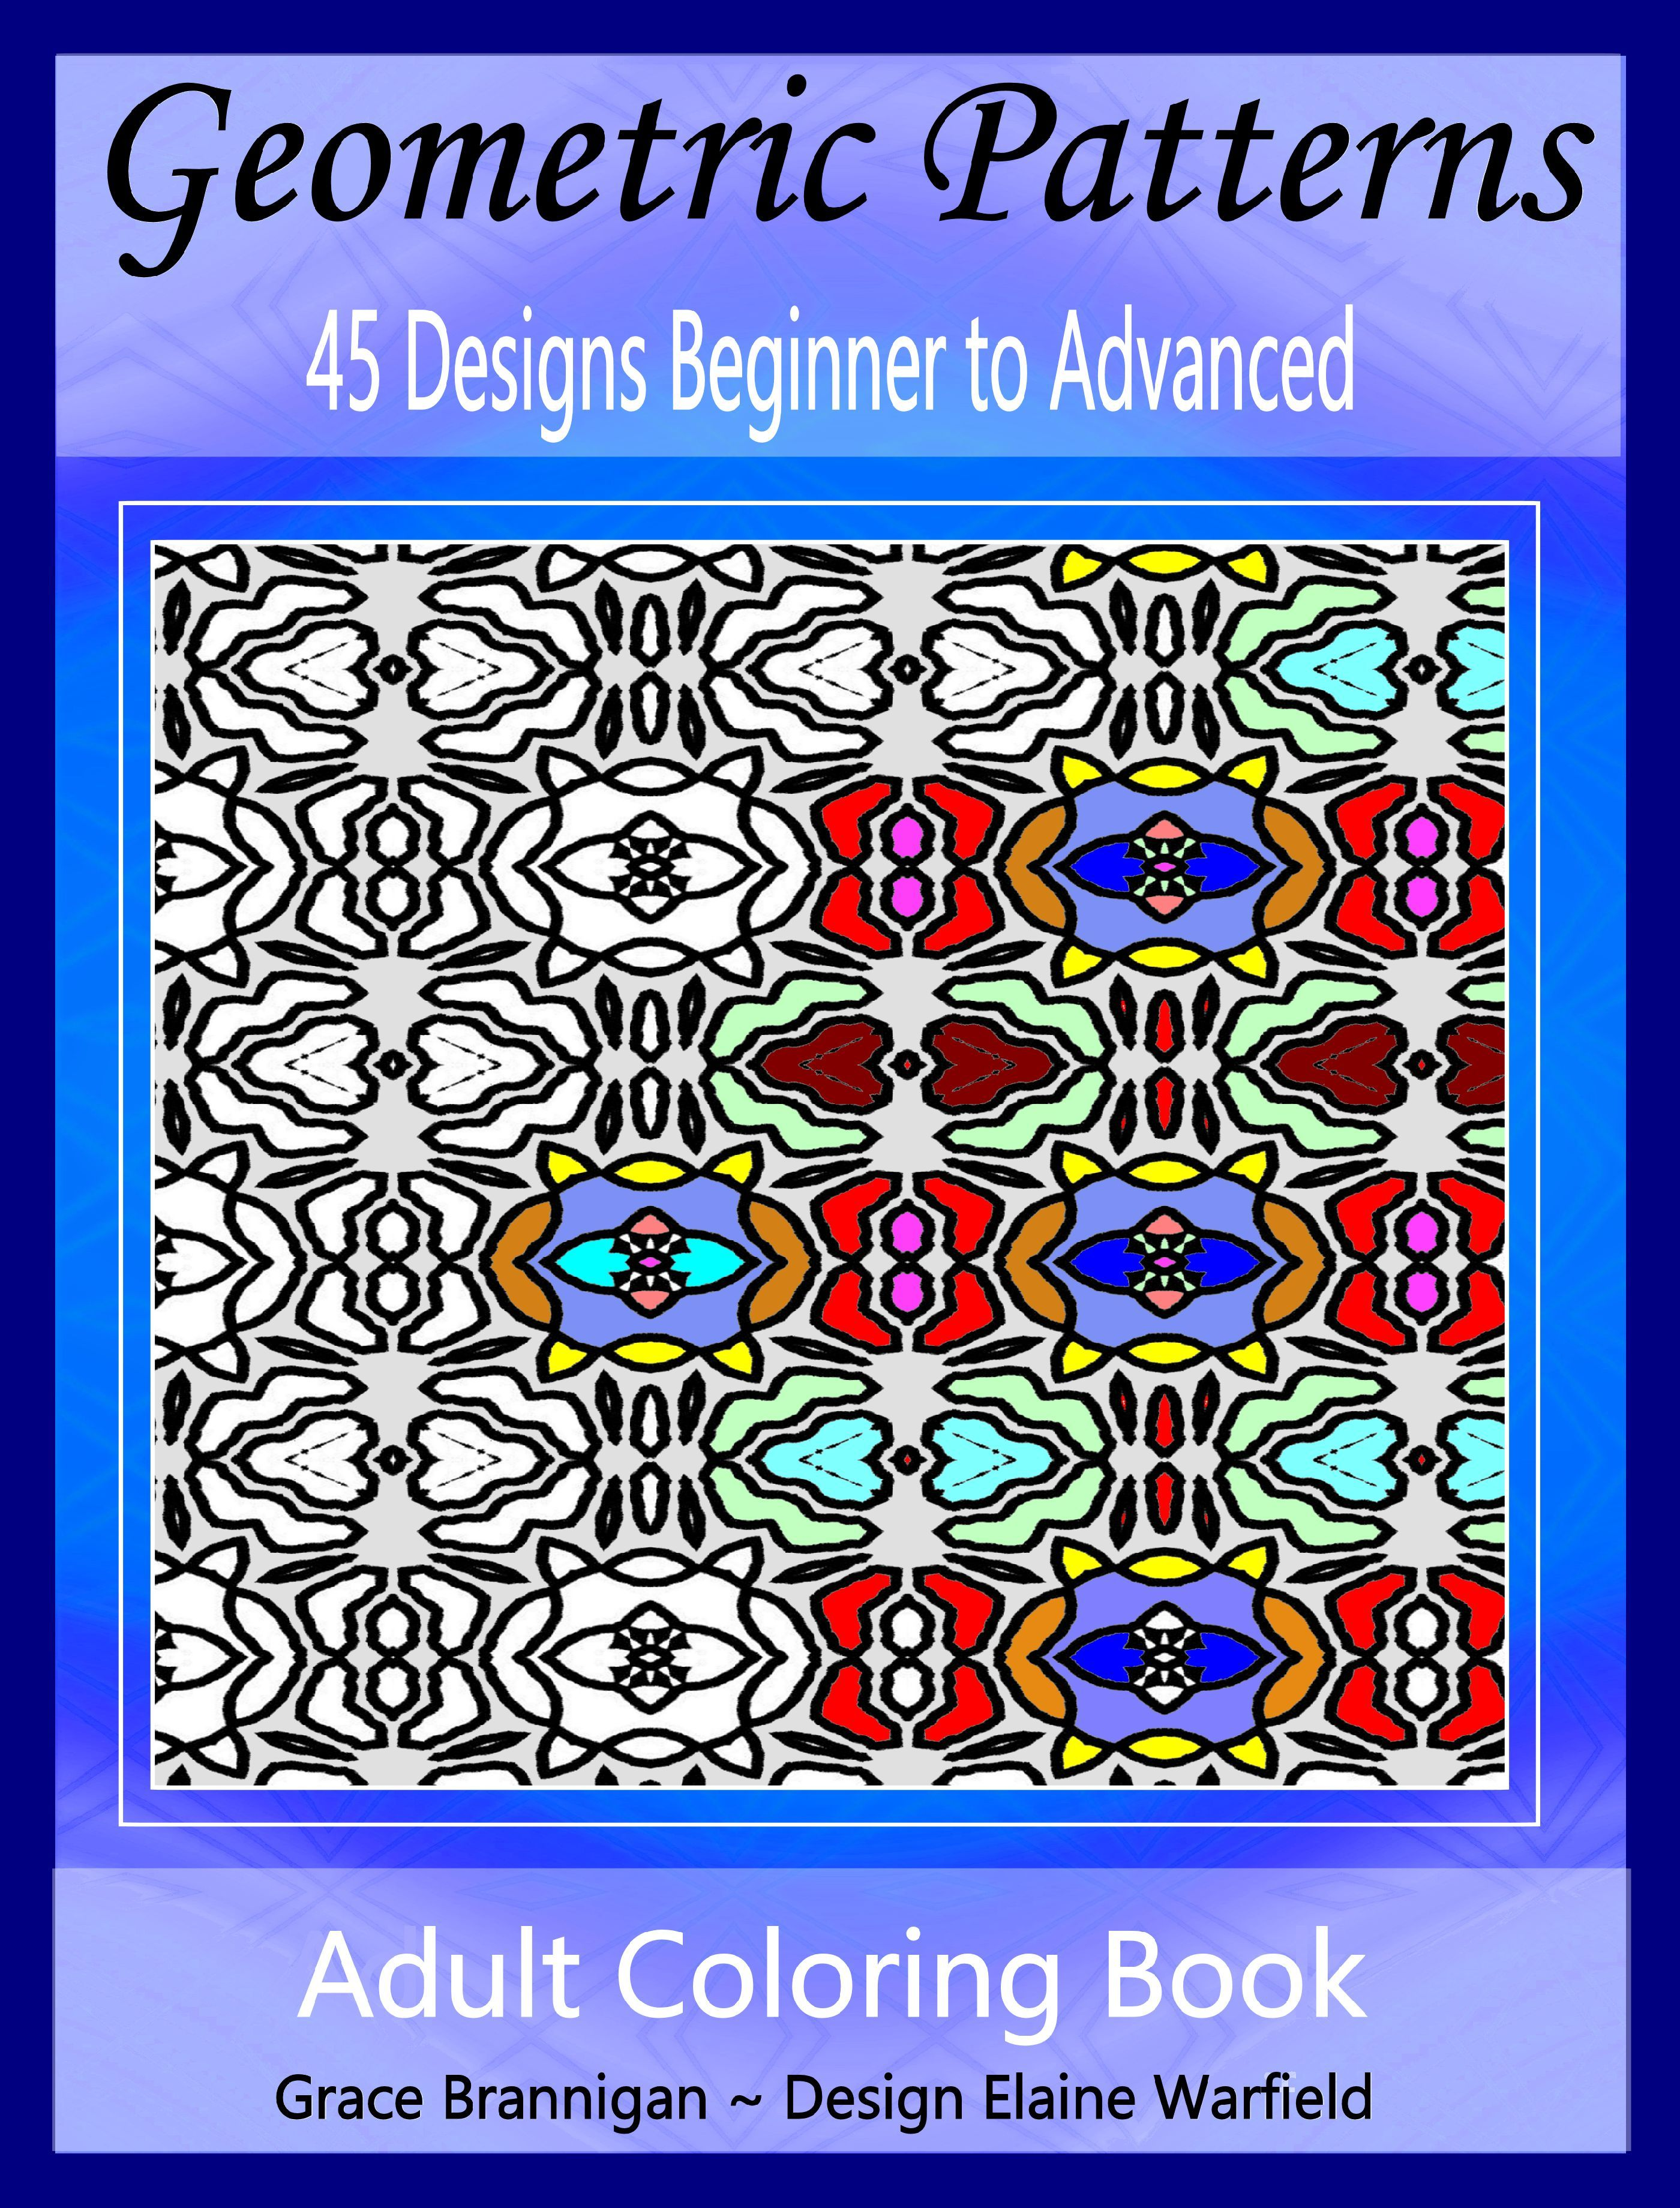 Geometric Patterns Coloring Book: 45 Designs Beginner to Advanced